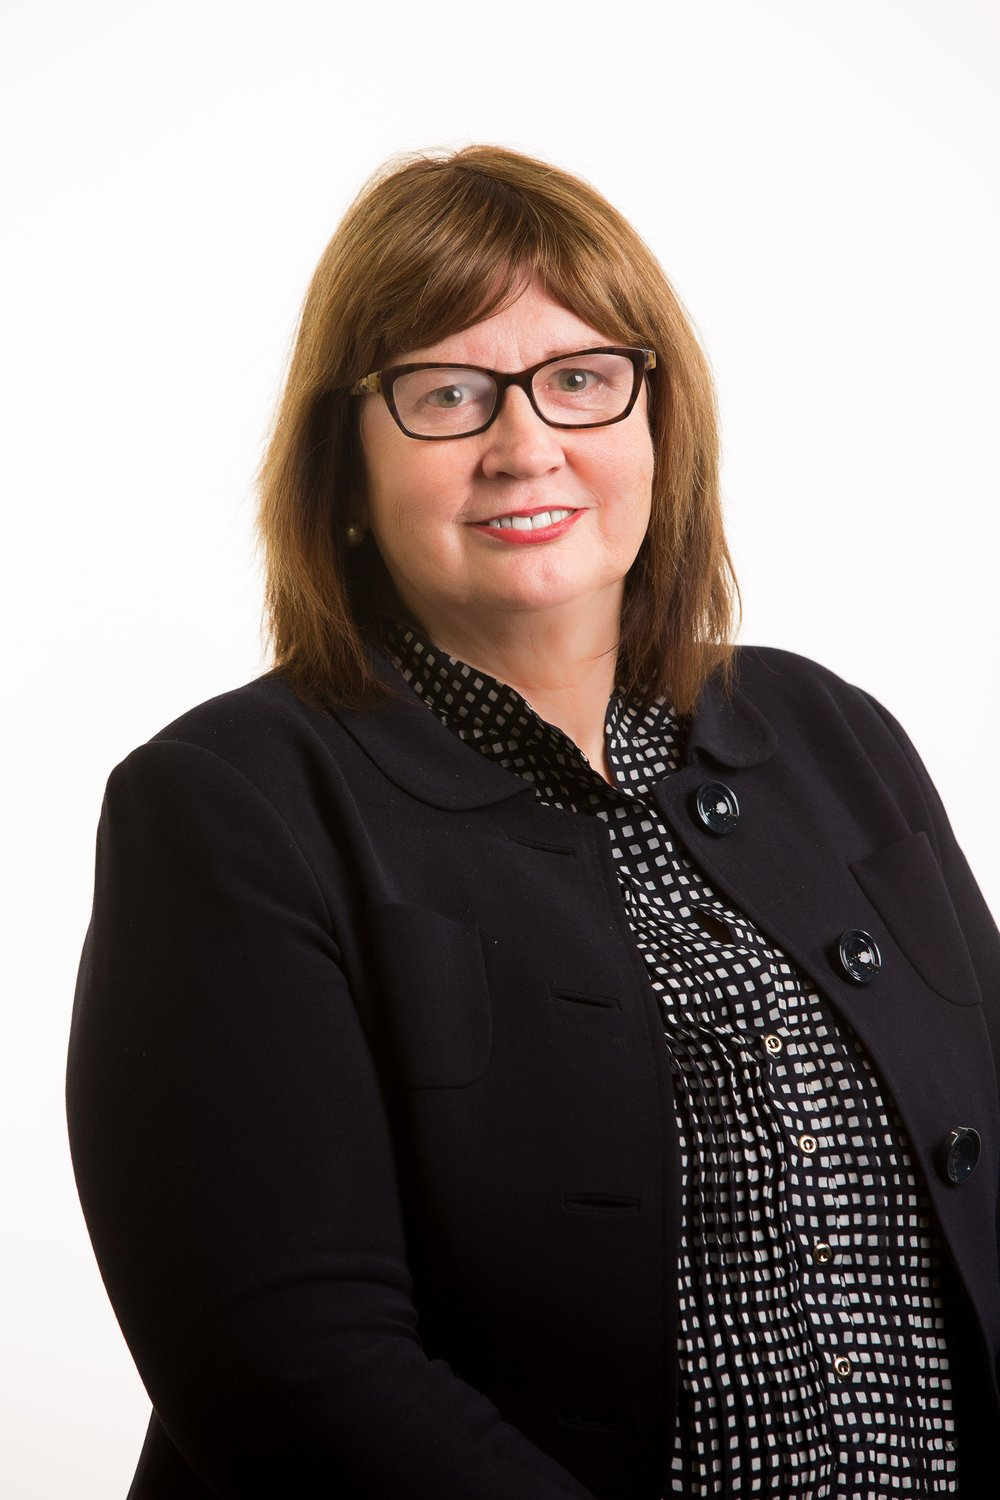 Monica Slavin MBBS, FRACP, MD - Head, Department of Infectious Disease Peter MacCallum Cancer Institute Head, Immunocompromised Host Infection Service Royal Melbourne HospitalProfessor, Department of Medicine, University of Melbourne